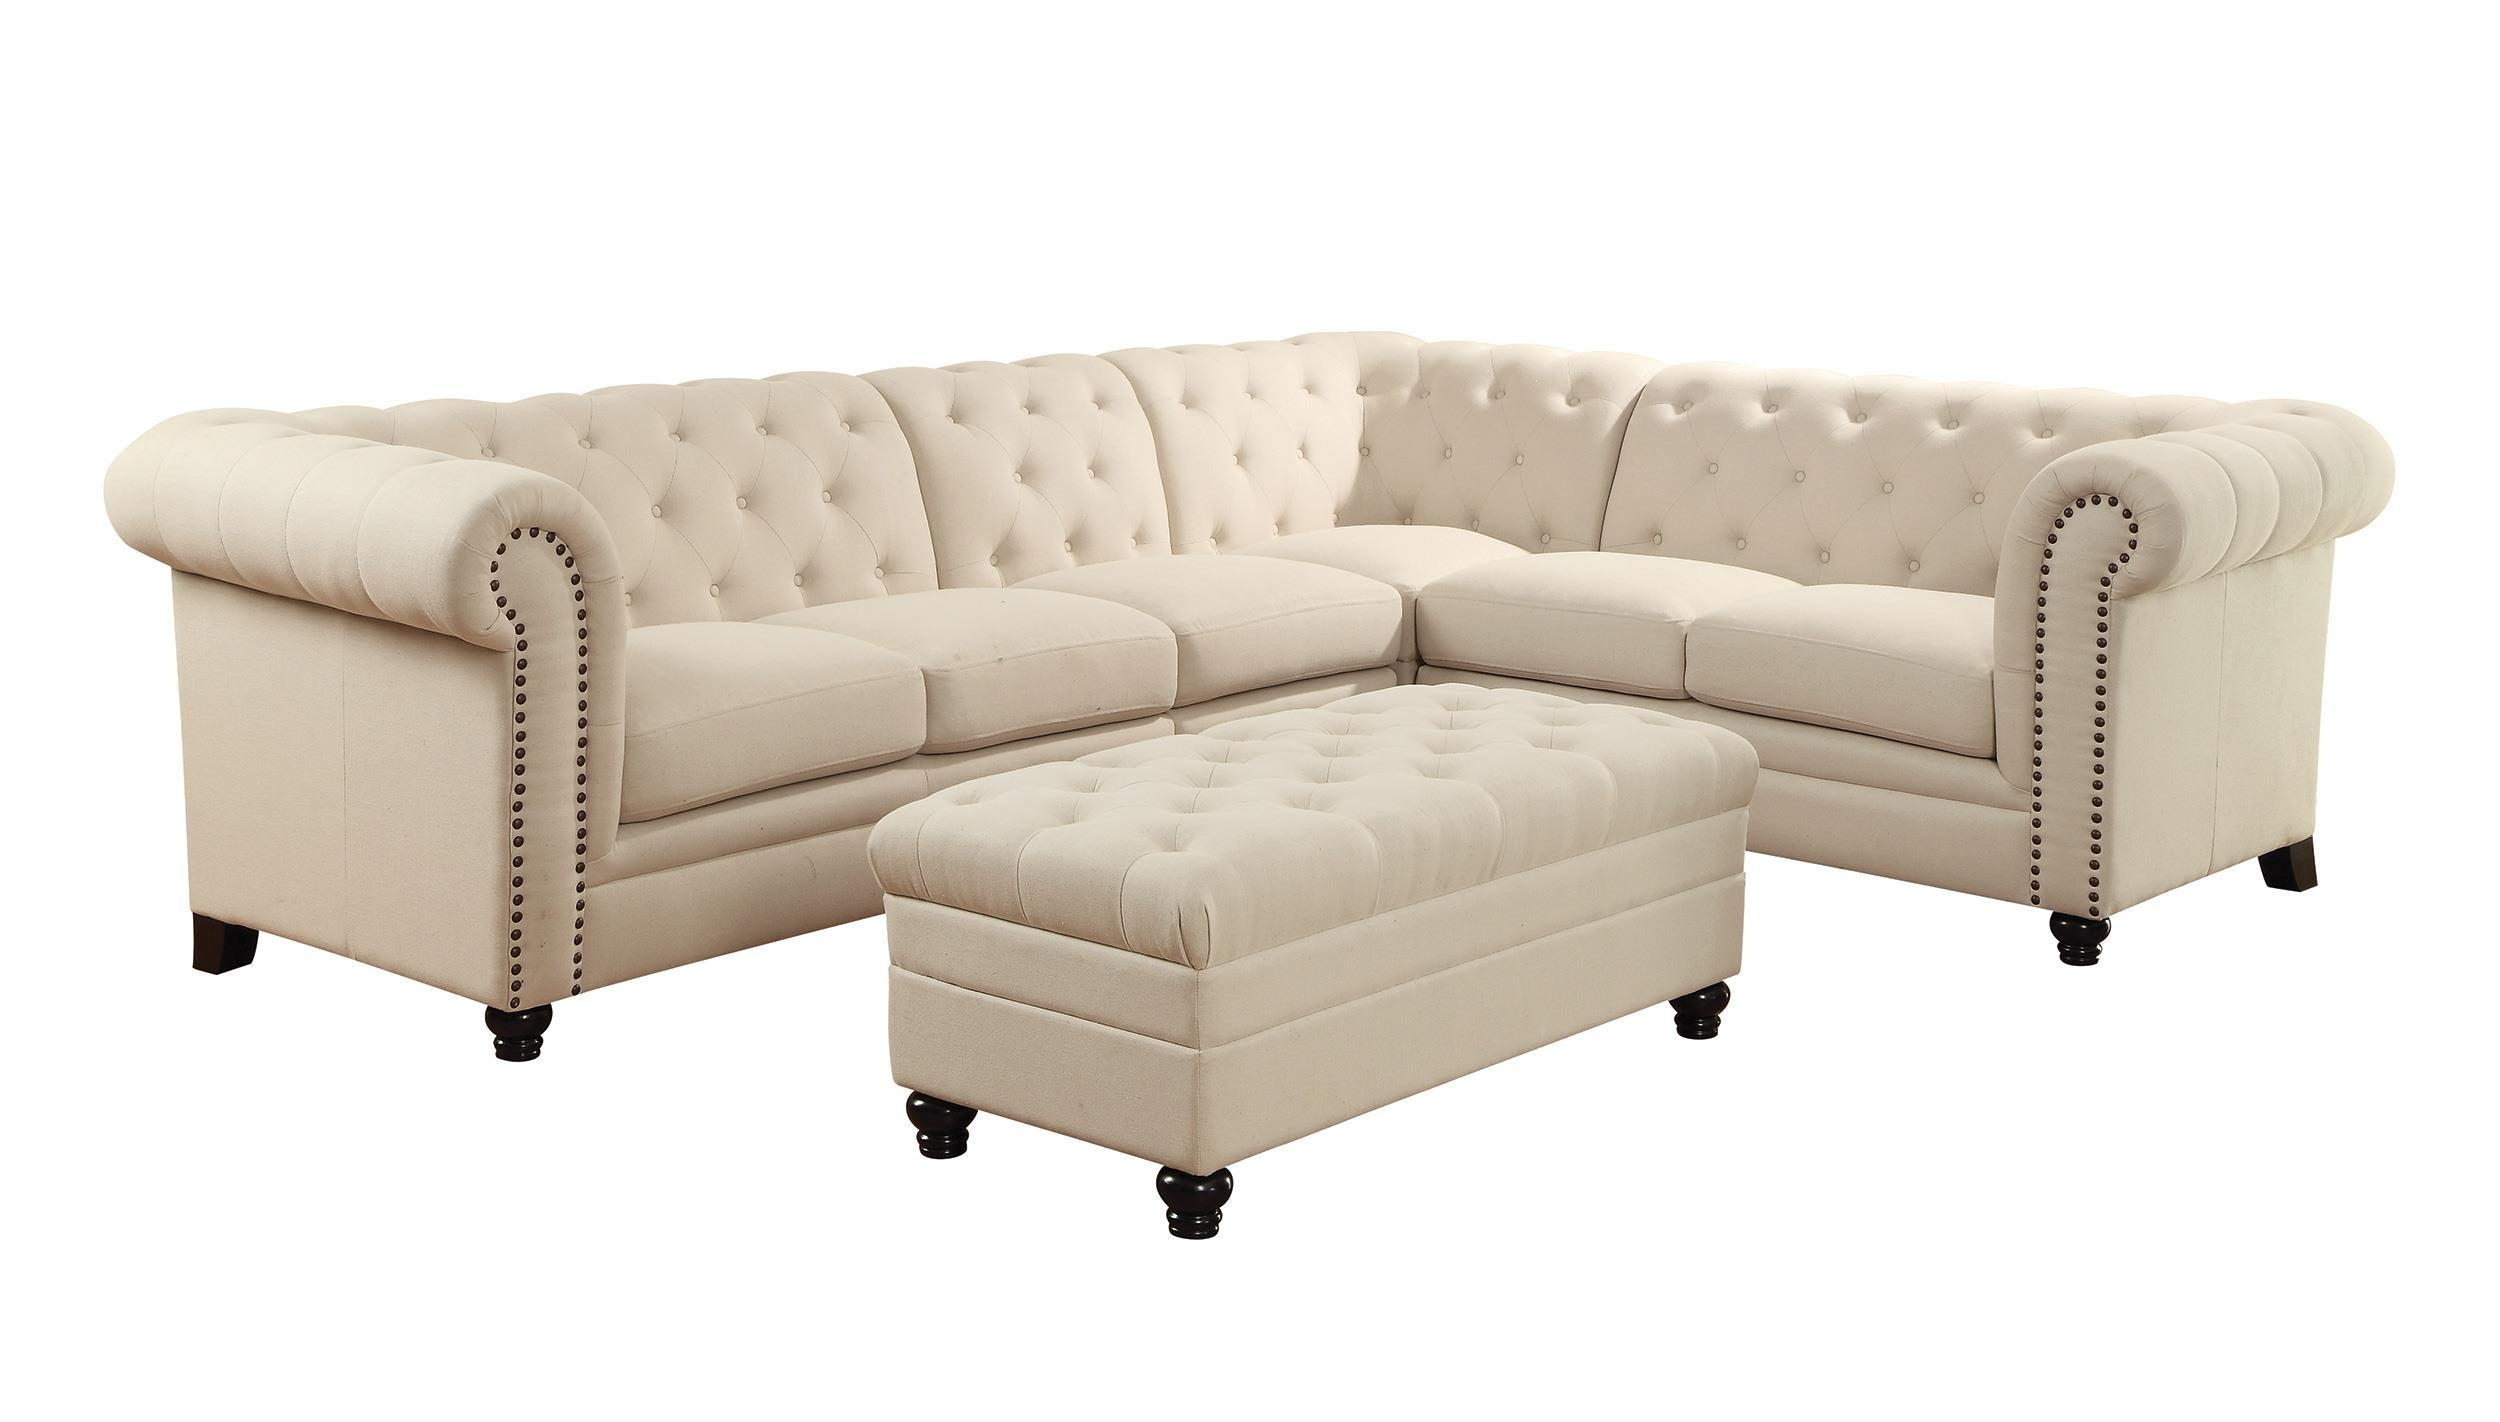 Sofas Center : Grey Tufted Sleeper Sofa Velvet Sofanovogratz Ava Pertaining To Tufted Sleeper Sofas (Image 14 of 20)